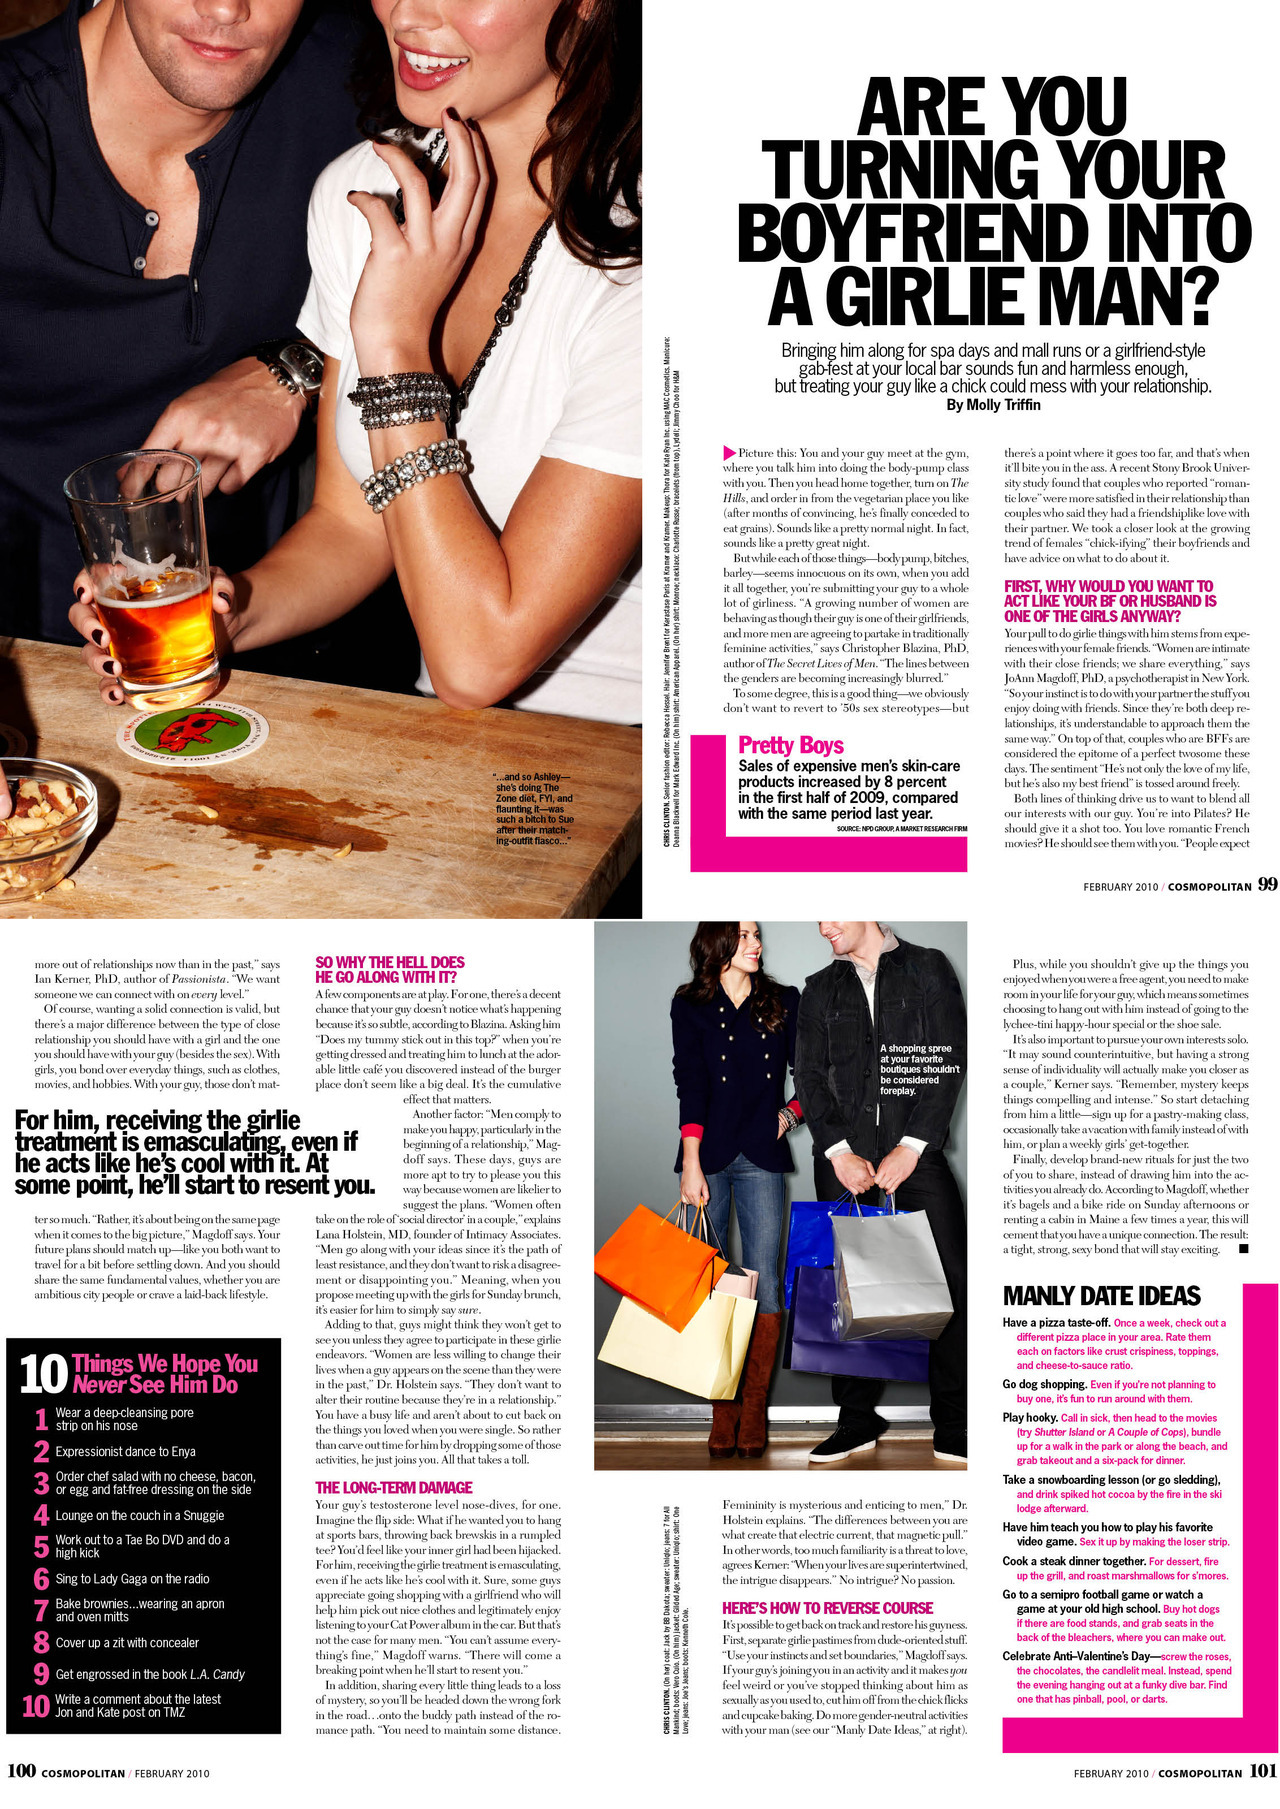 Are You Turning Your Boyfriend Into a Girlie Man? (click to view larger)